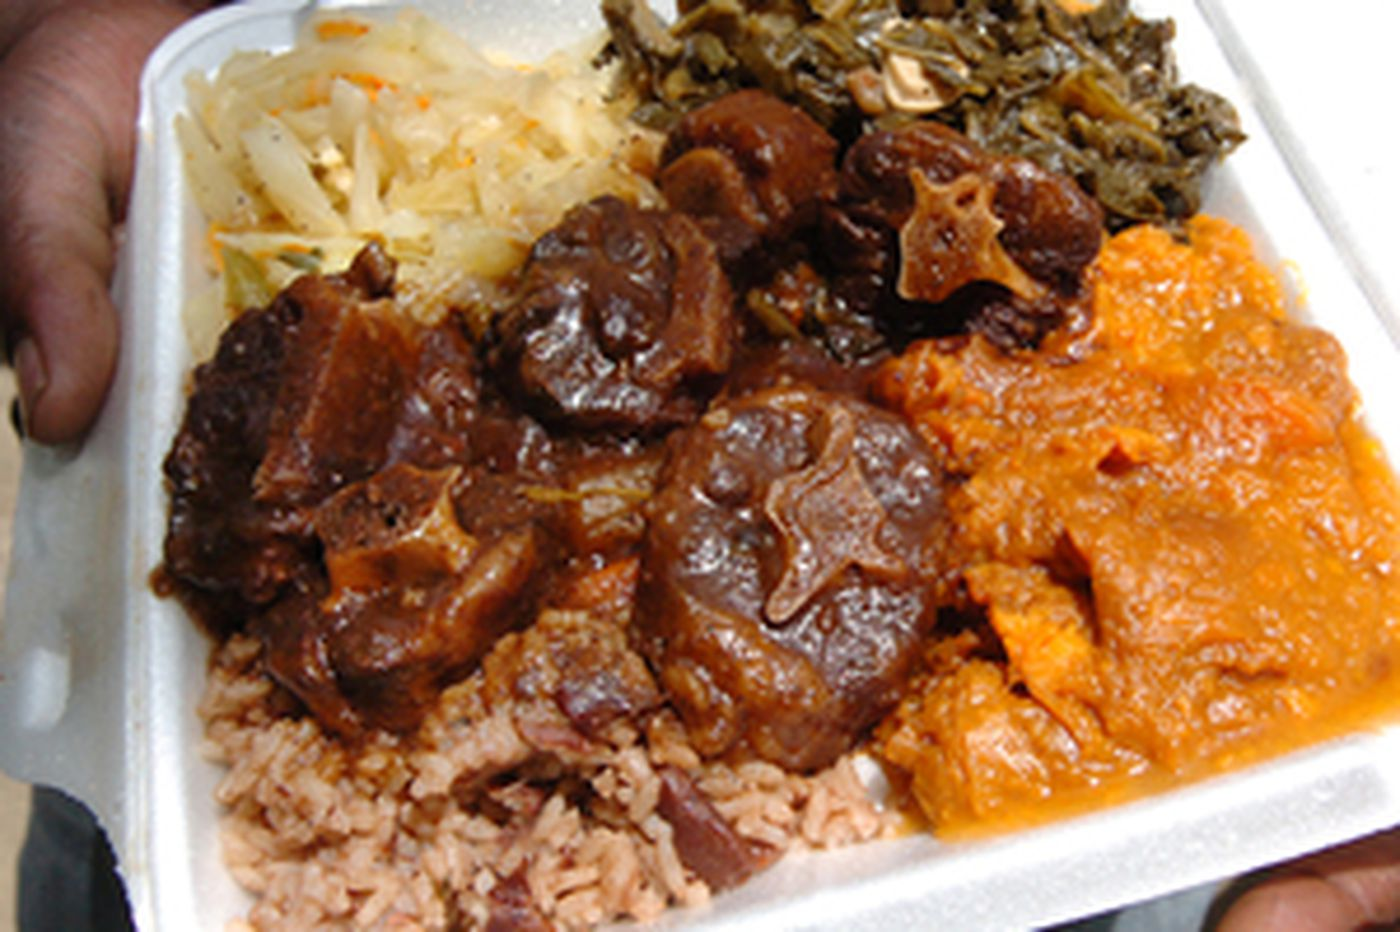 Real flavors of Jamaica, curbside in Philly